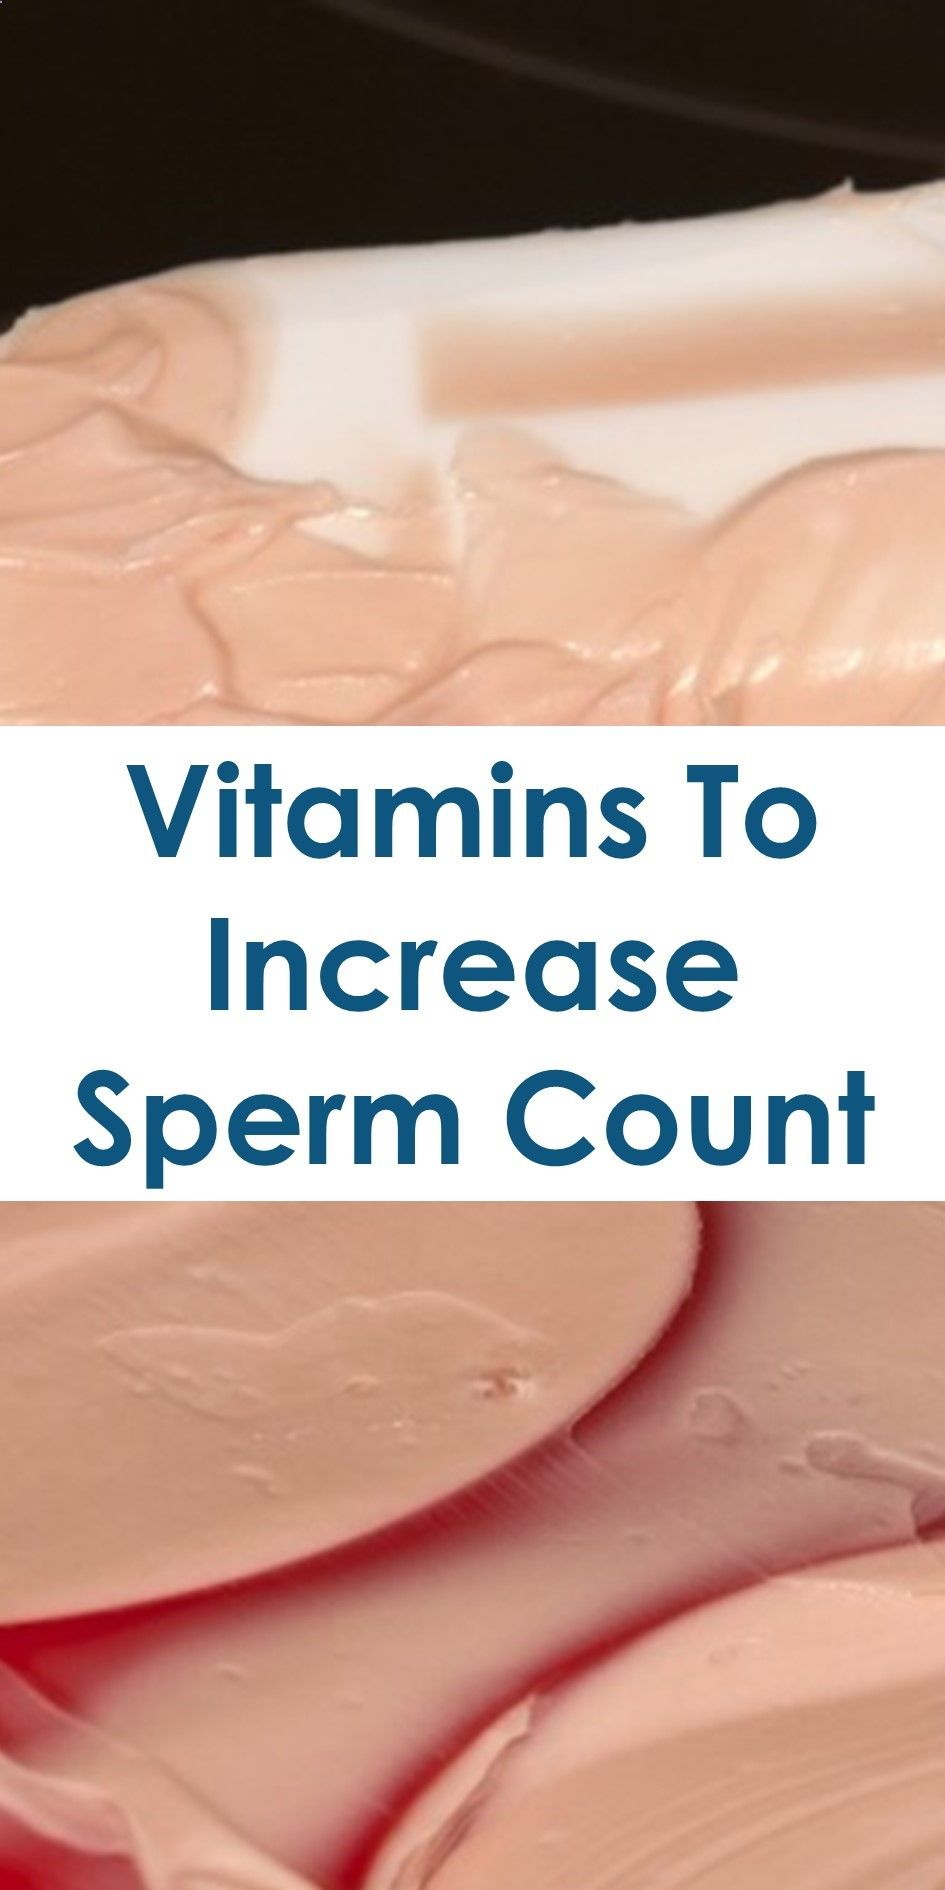 Vitamins to increase sperm volume